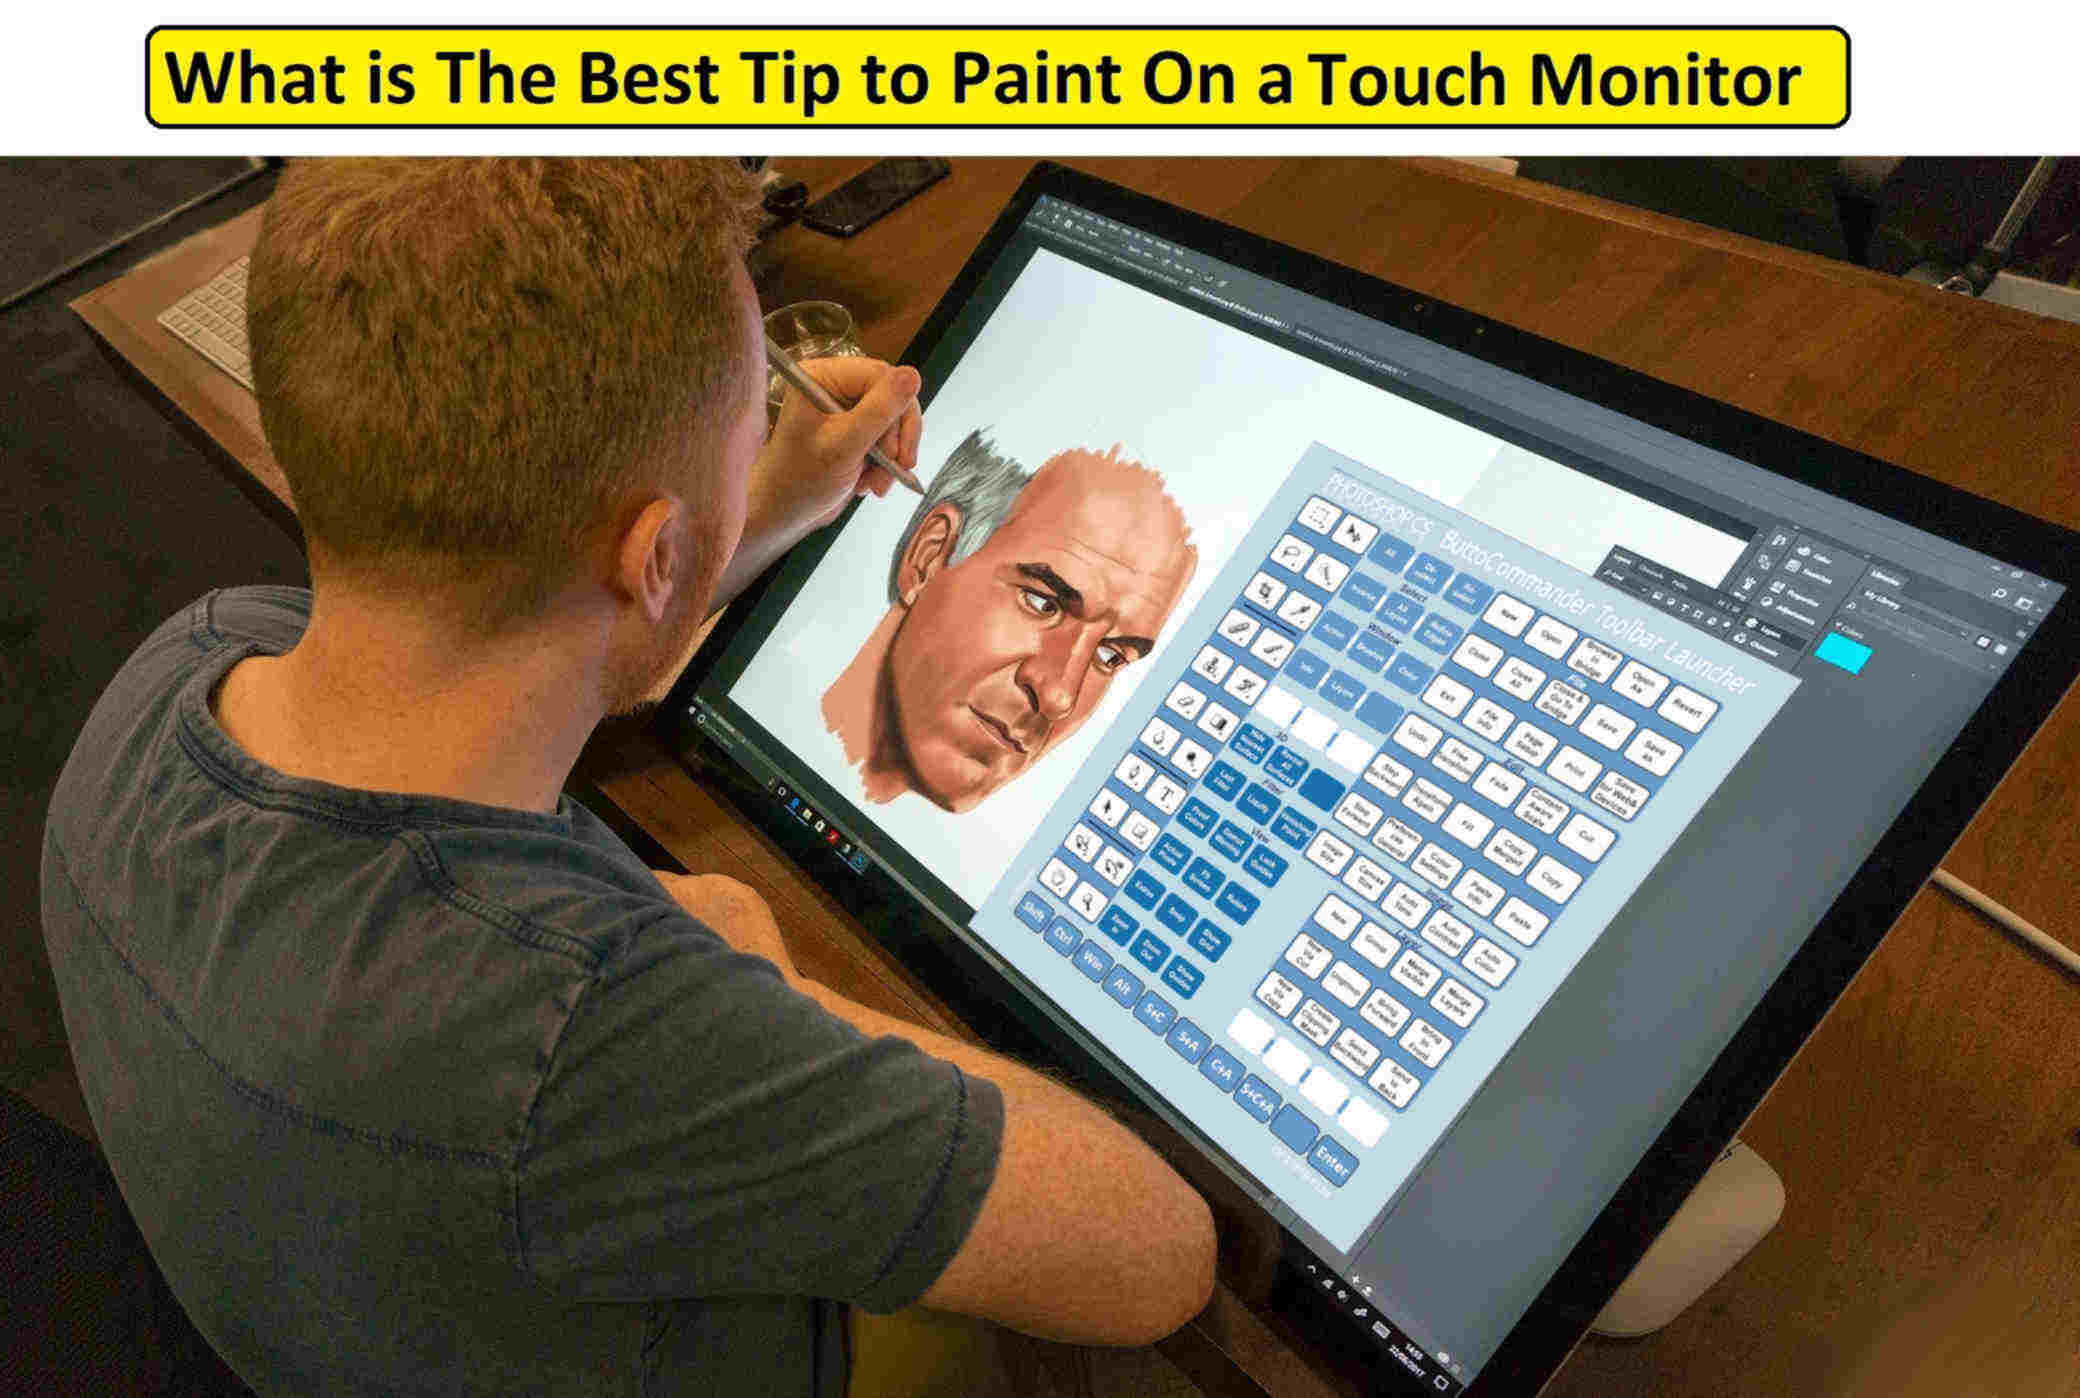 painting faster on touch screen monitor